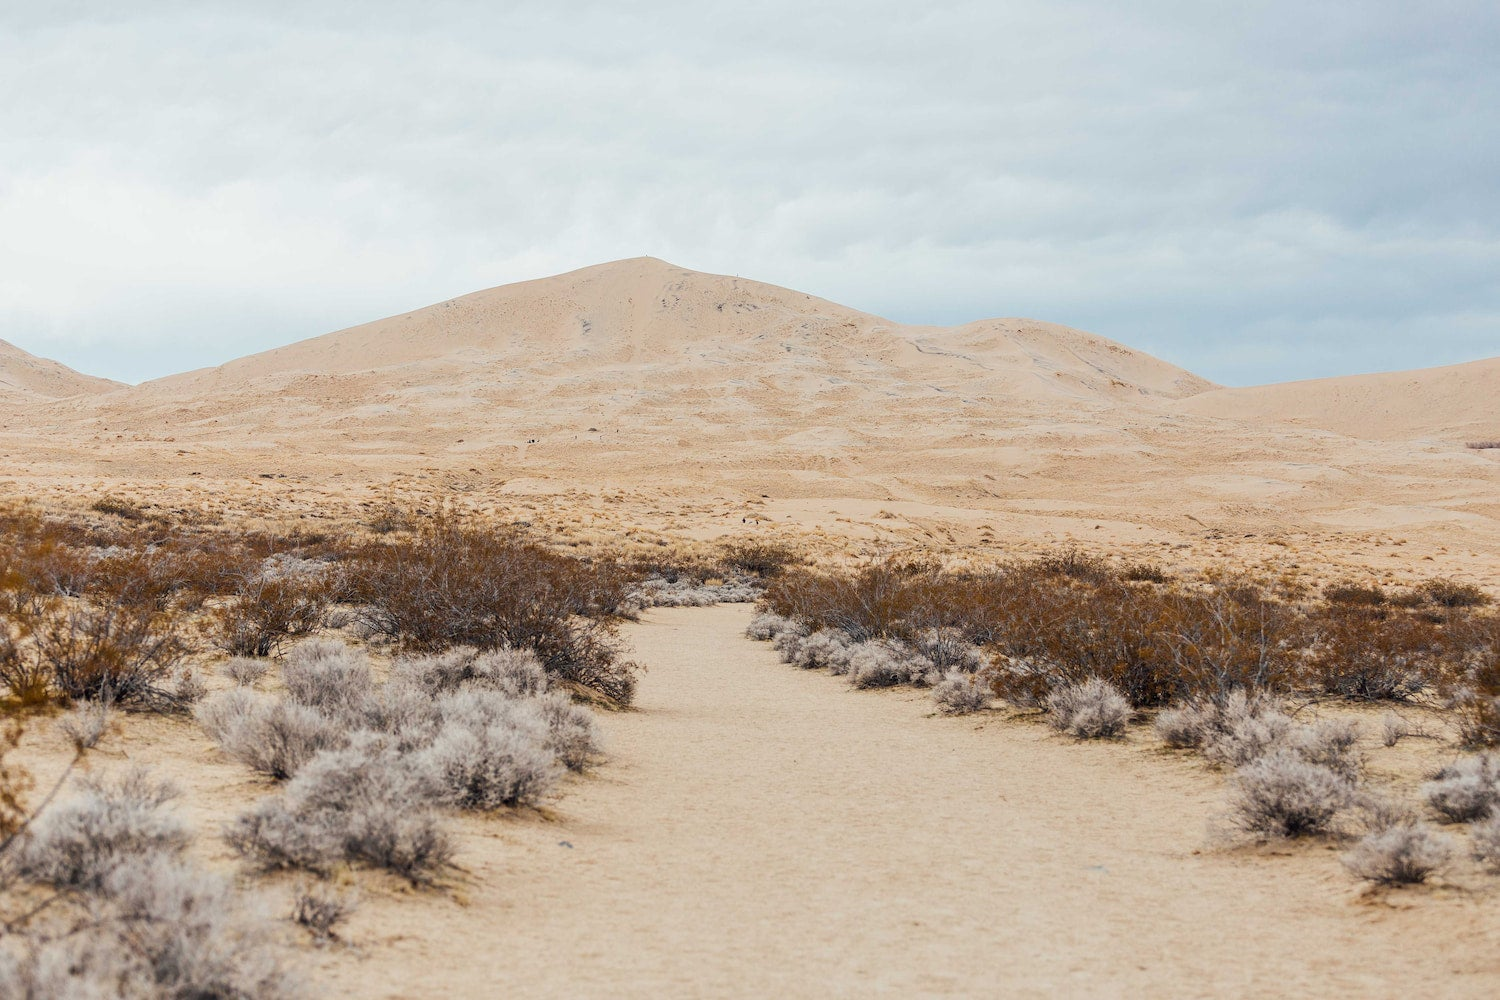 dunes and shrubs in mojave national preserve